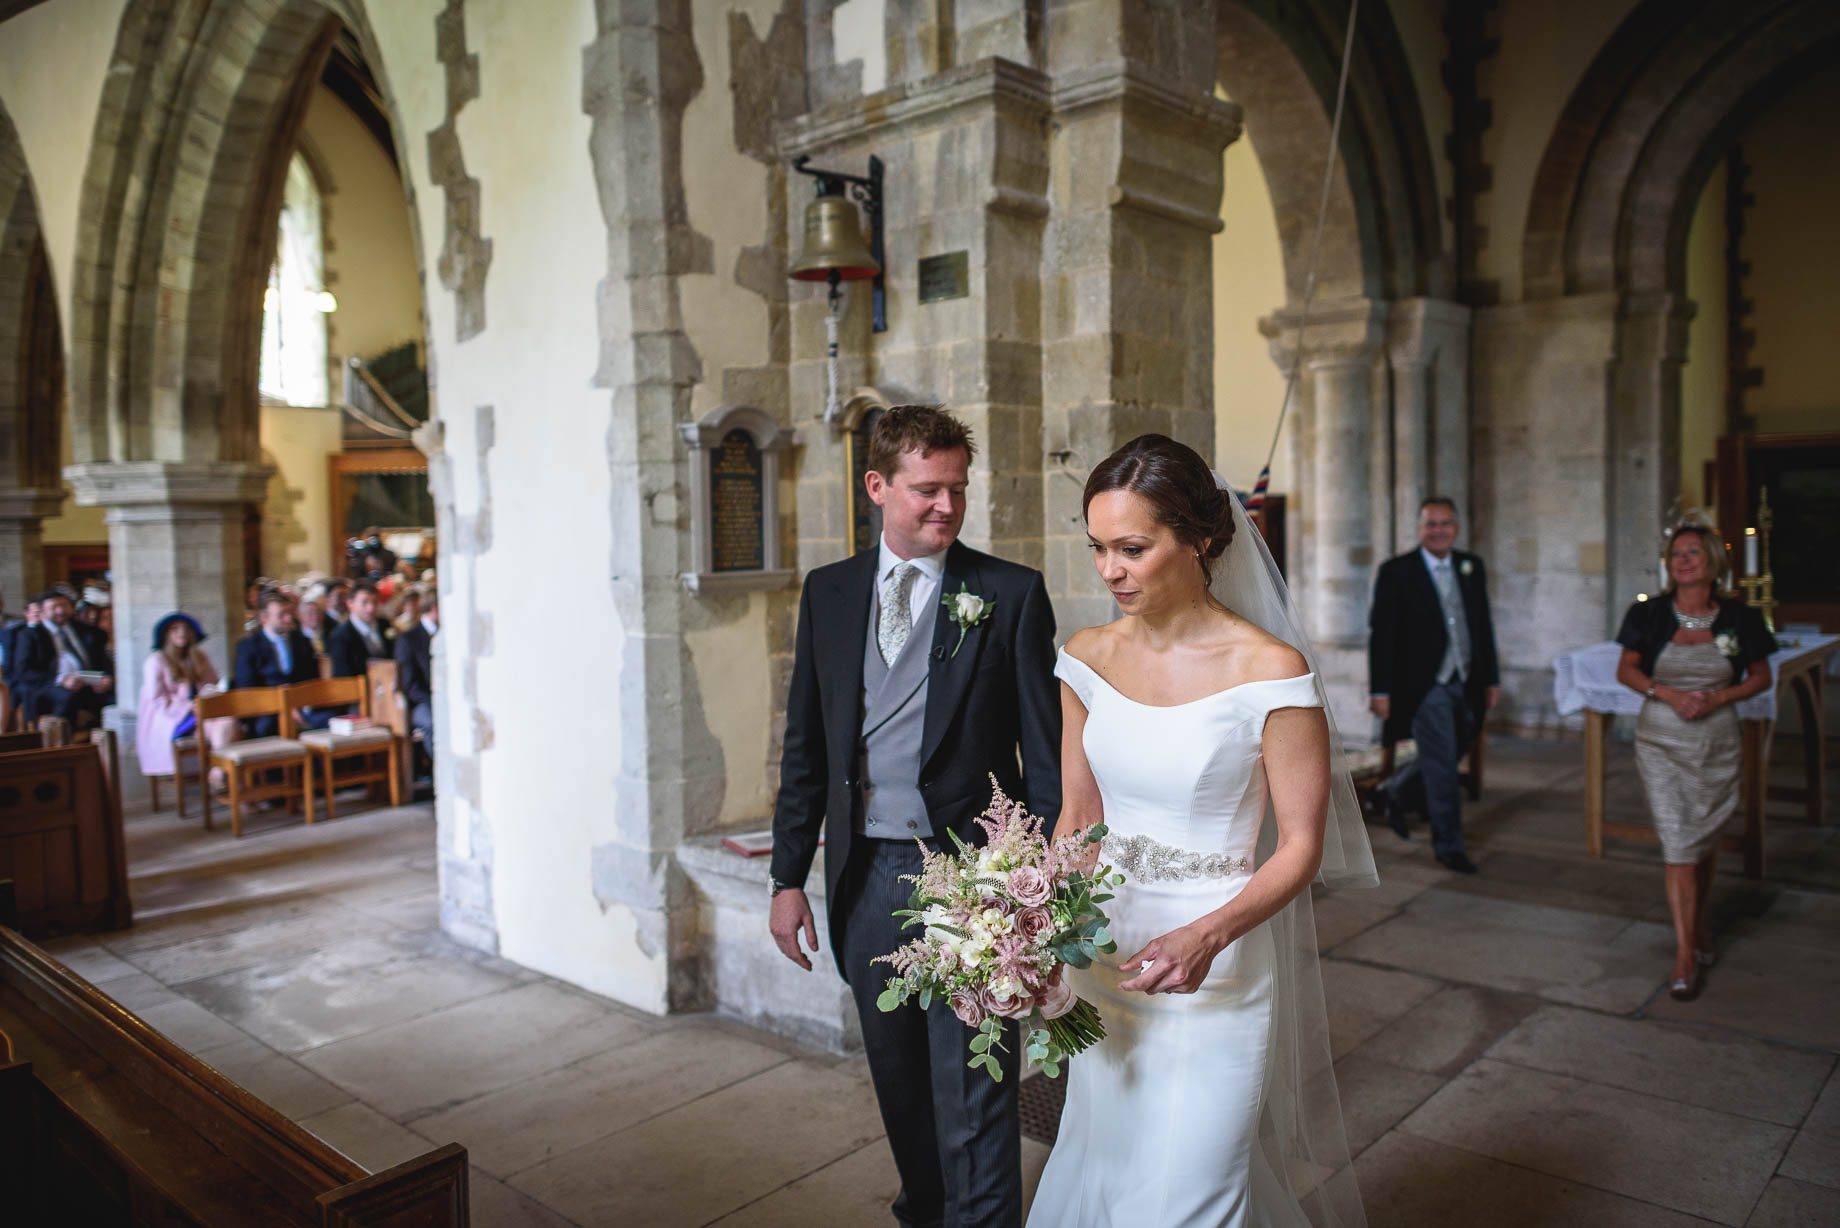 Tithe Barn wedding photography - Jayme and David (89 of 189)